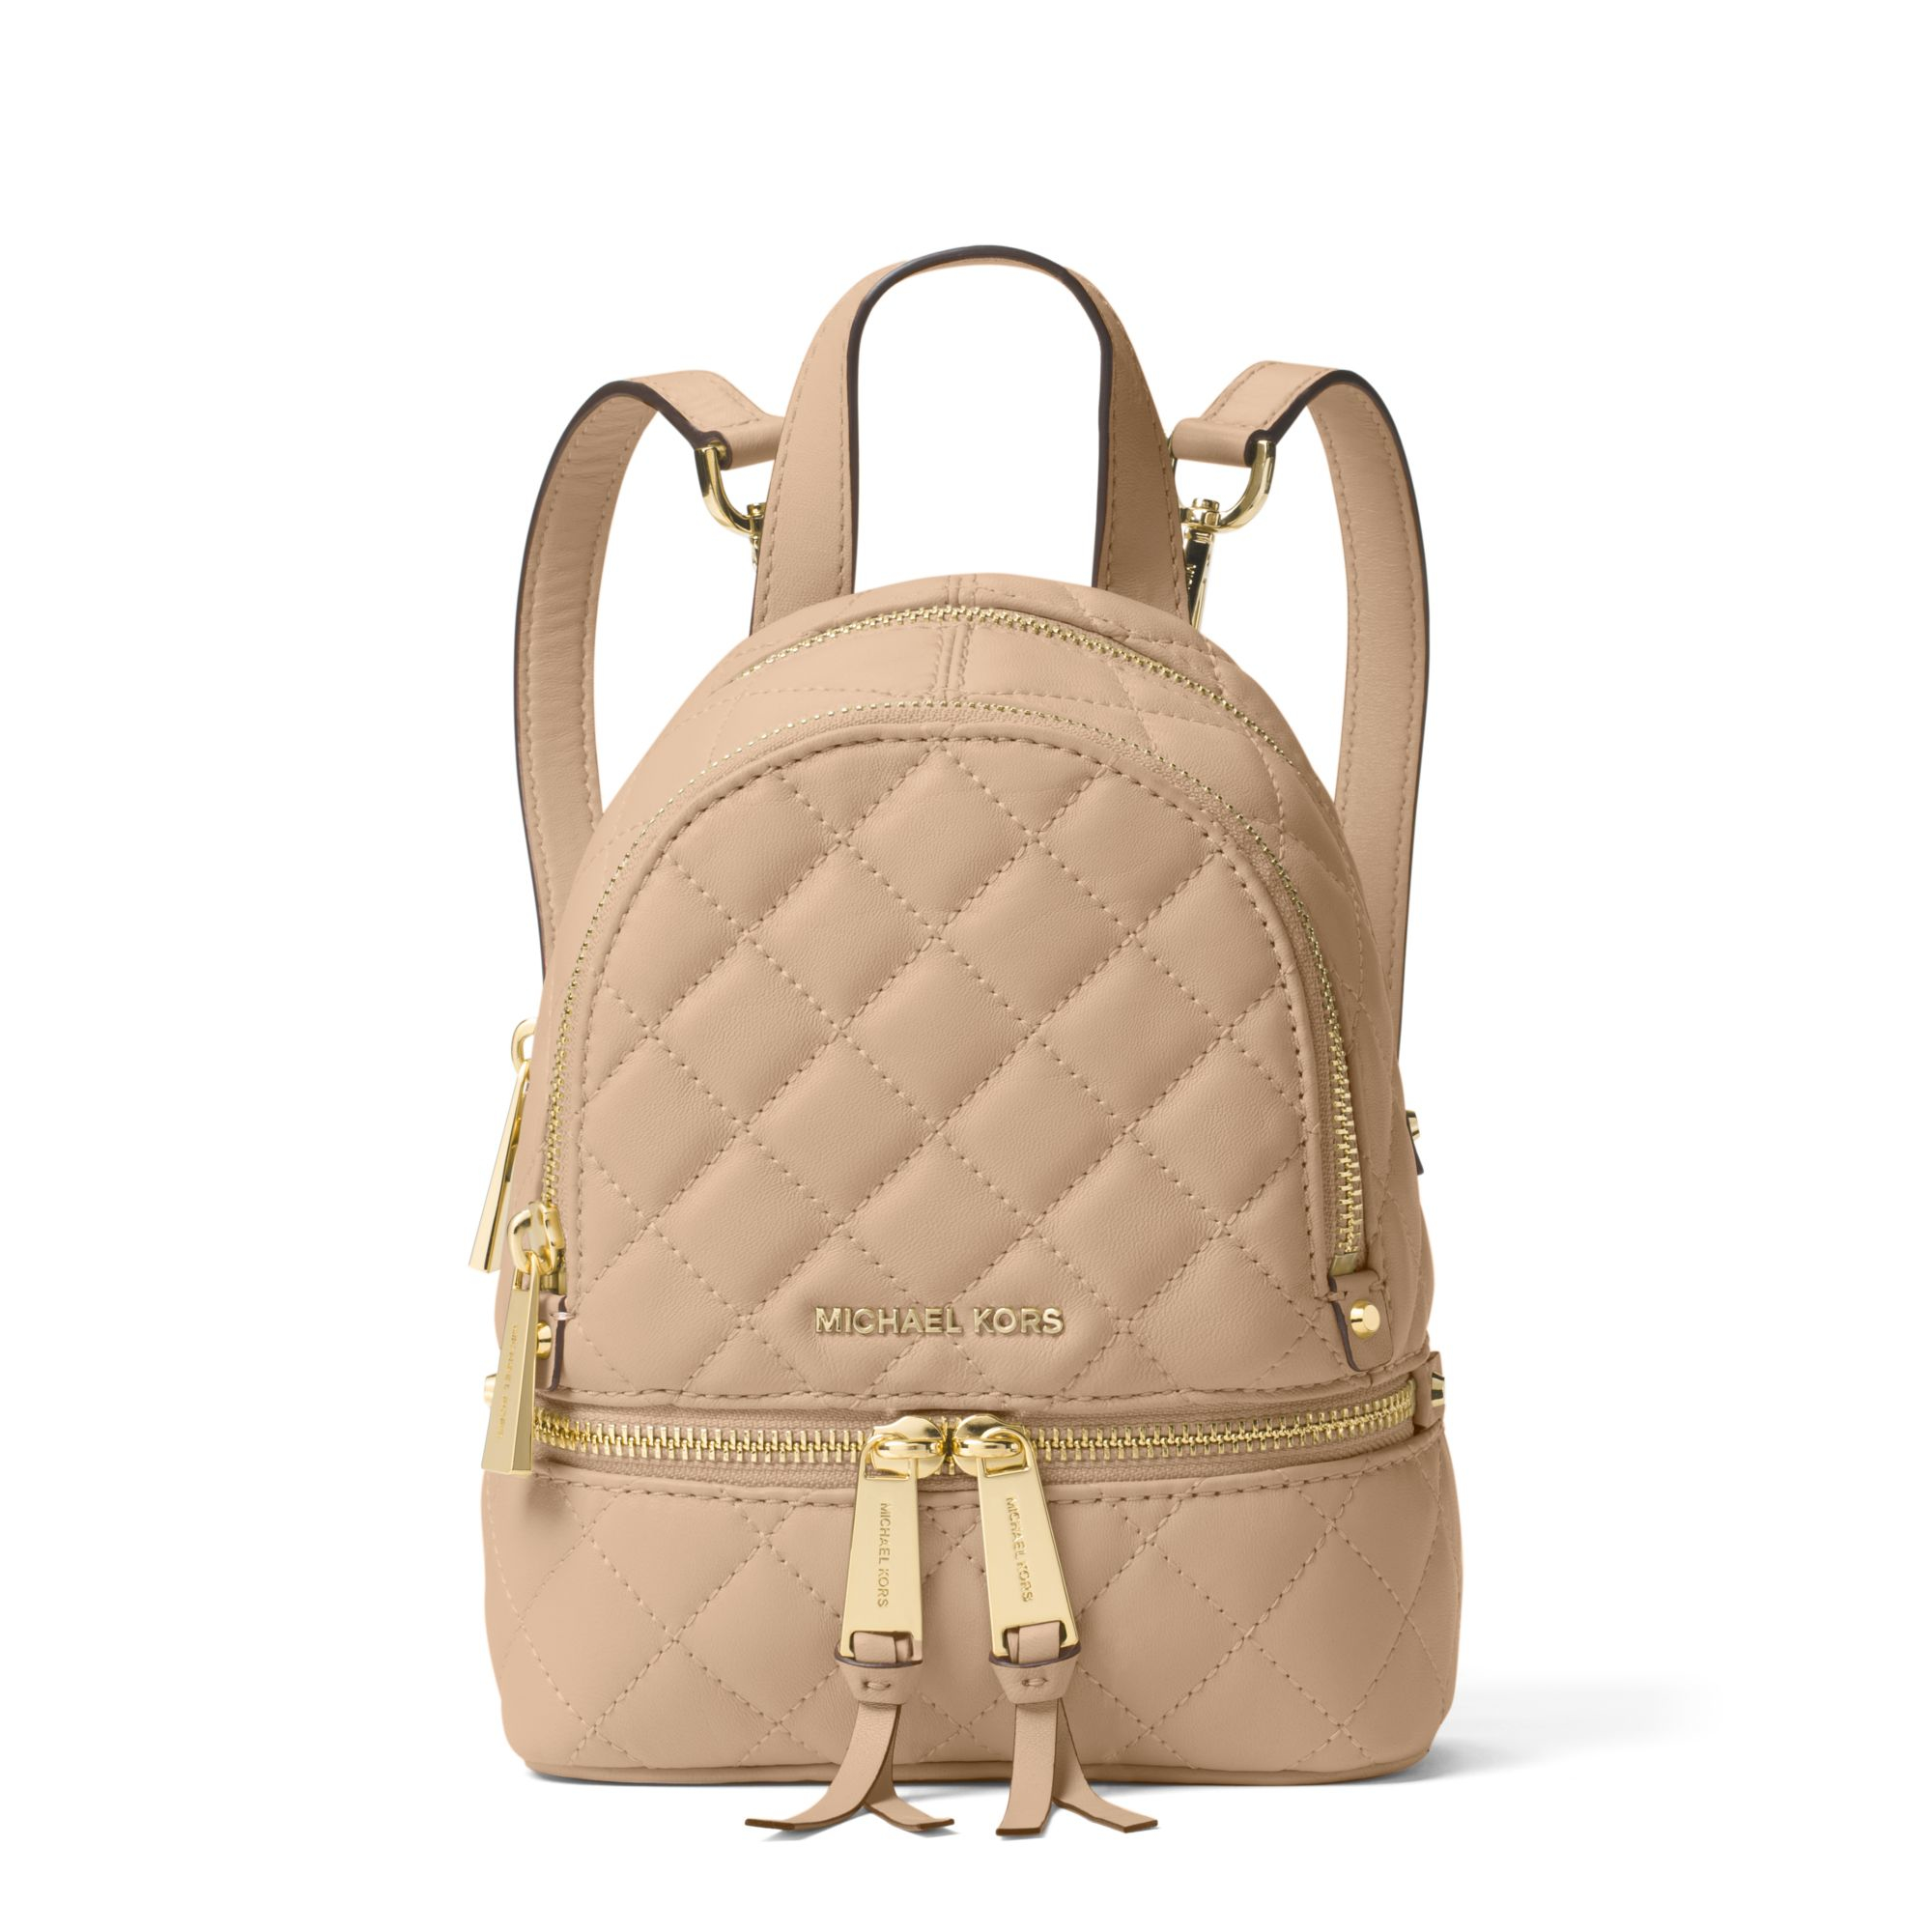 Lyst - Michael Kors Rhea Extra-small Quilted-leather Backpack in Natural